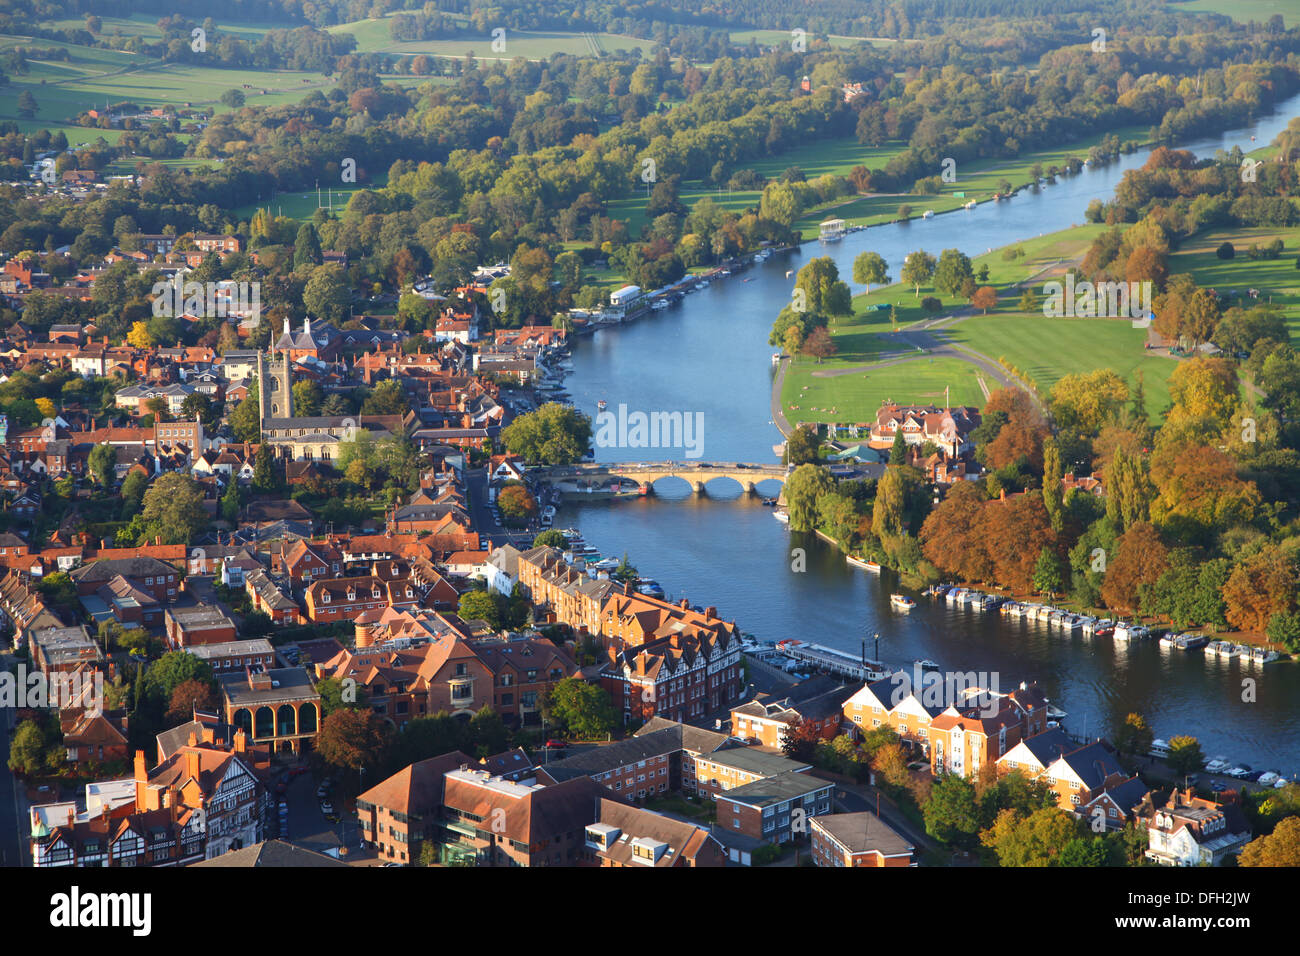 Aerial Summer view of Henley on Thames from balloon showing regatta course - Stock Image